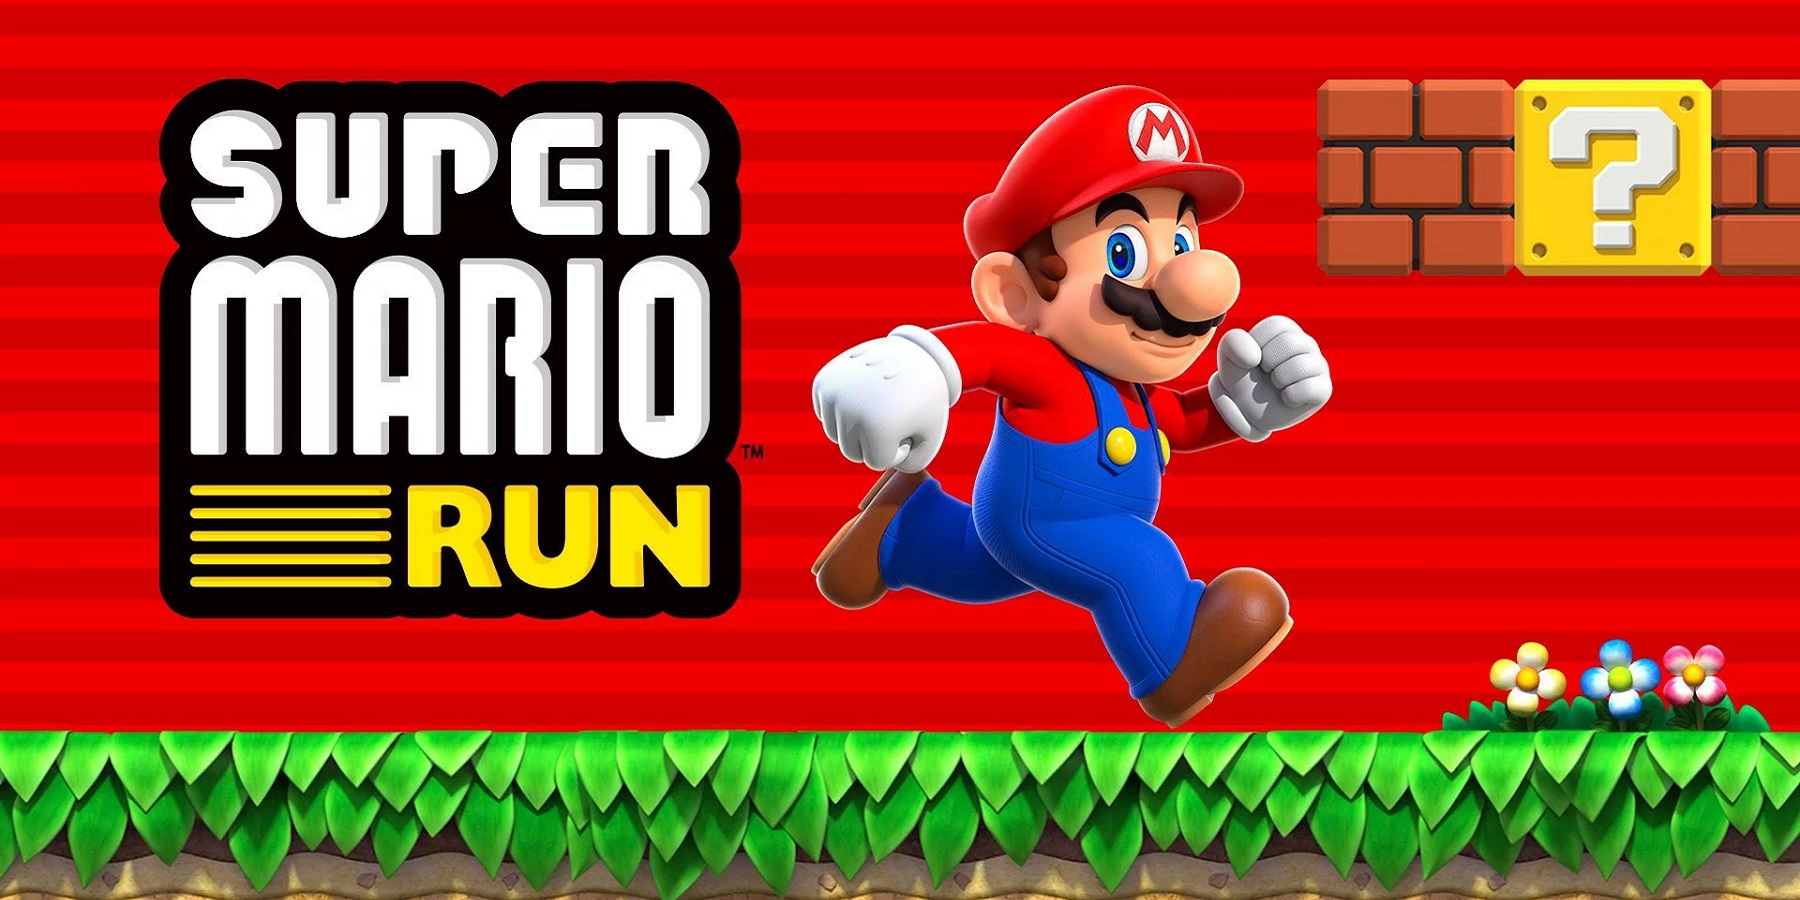 Super Mario Run title screen